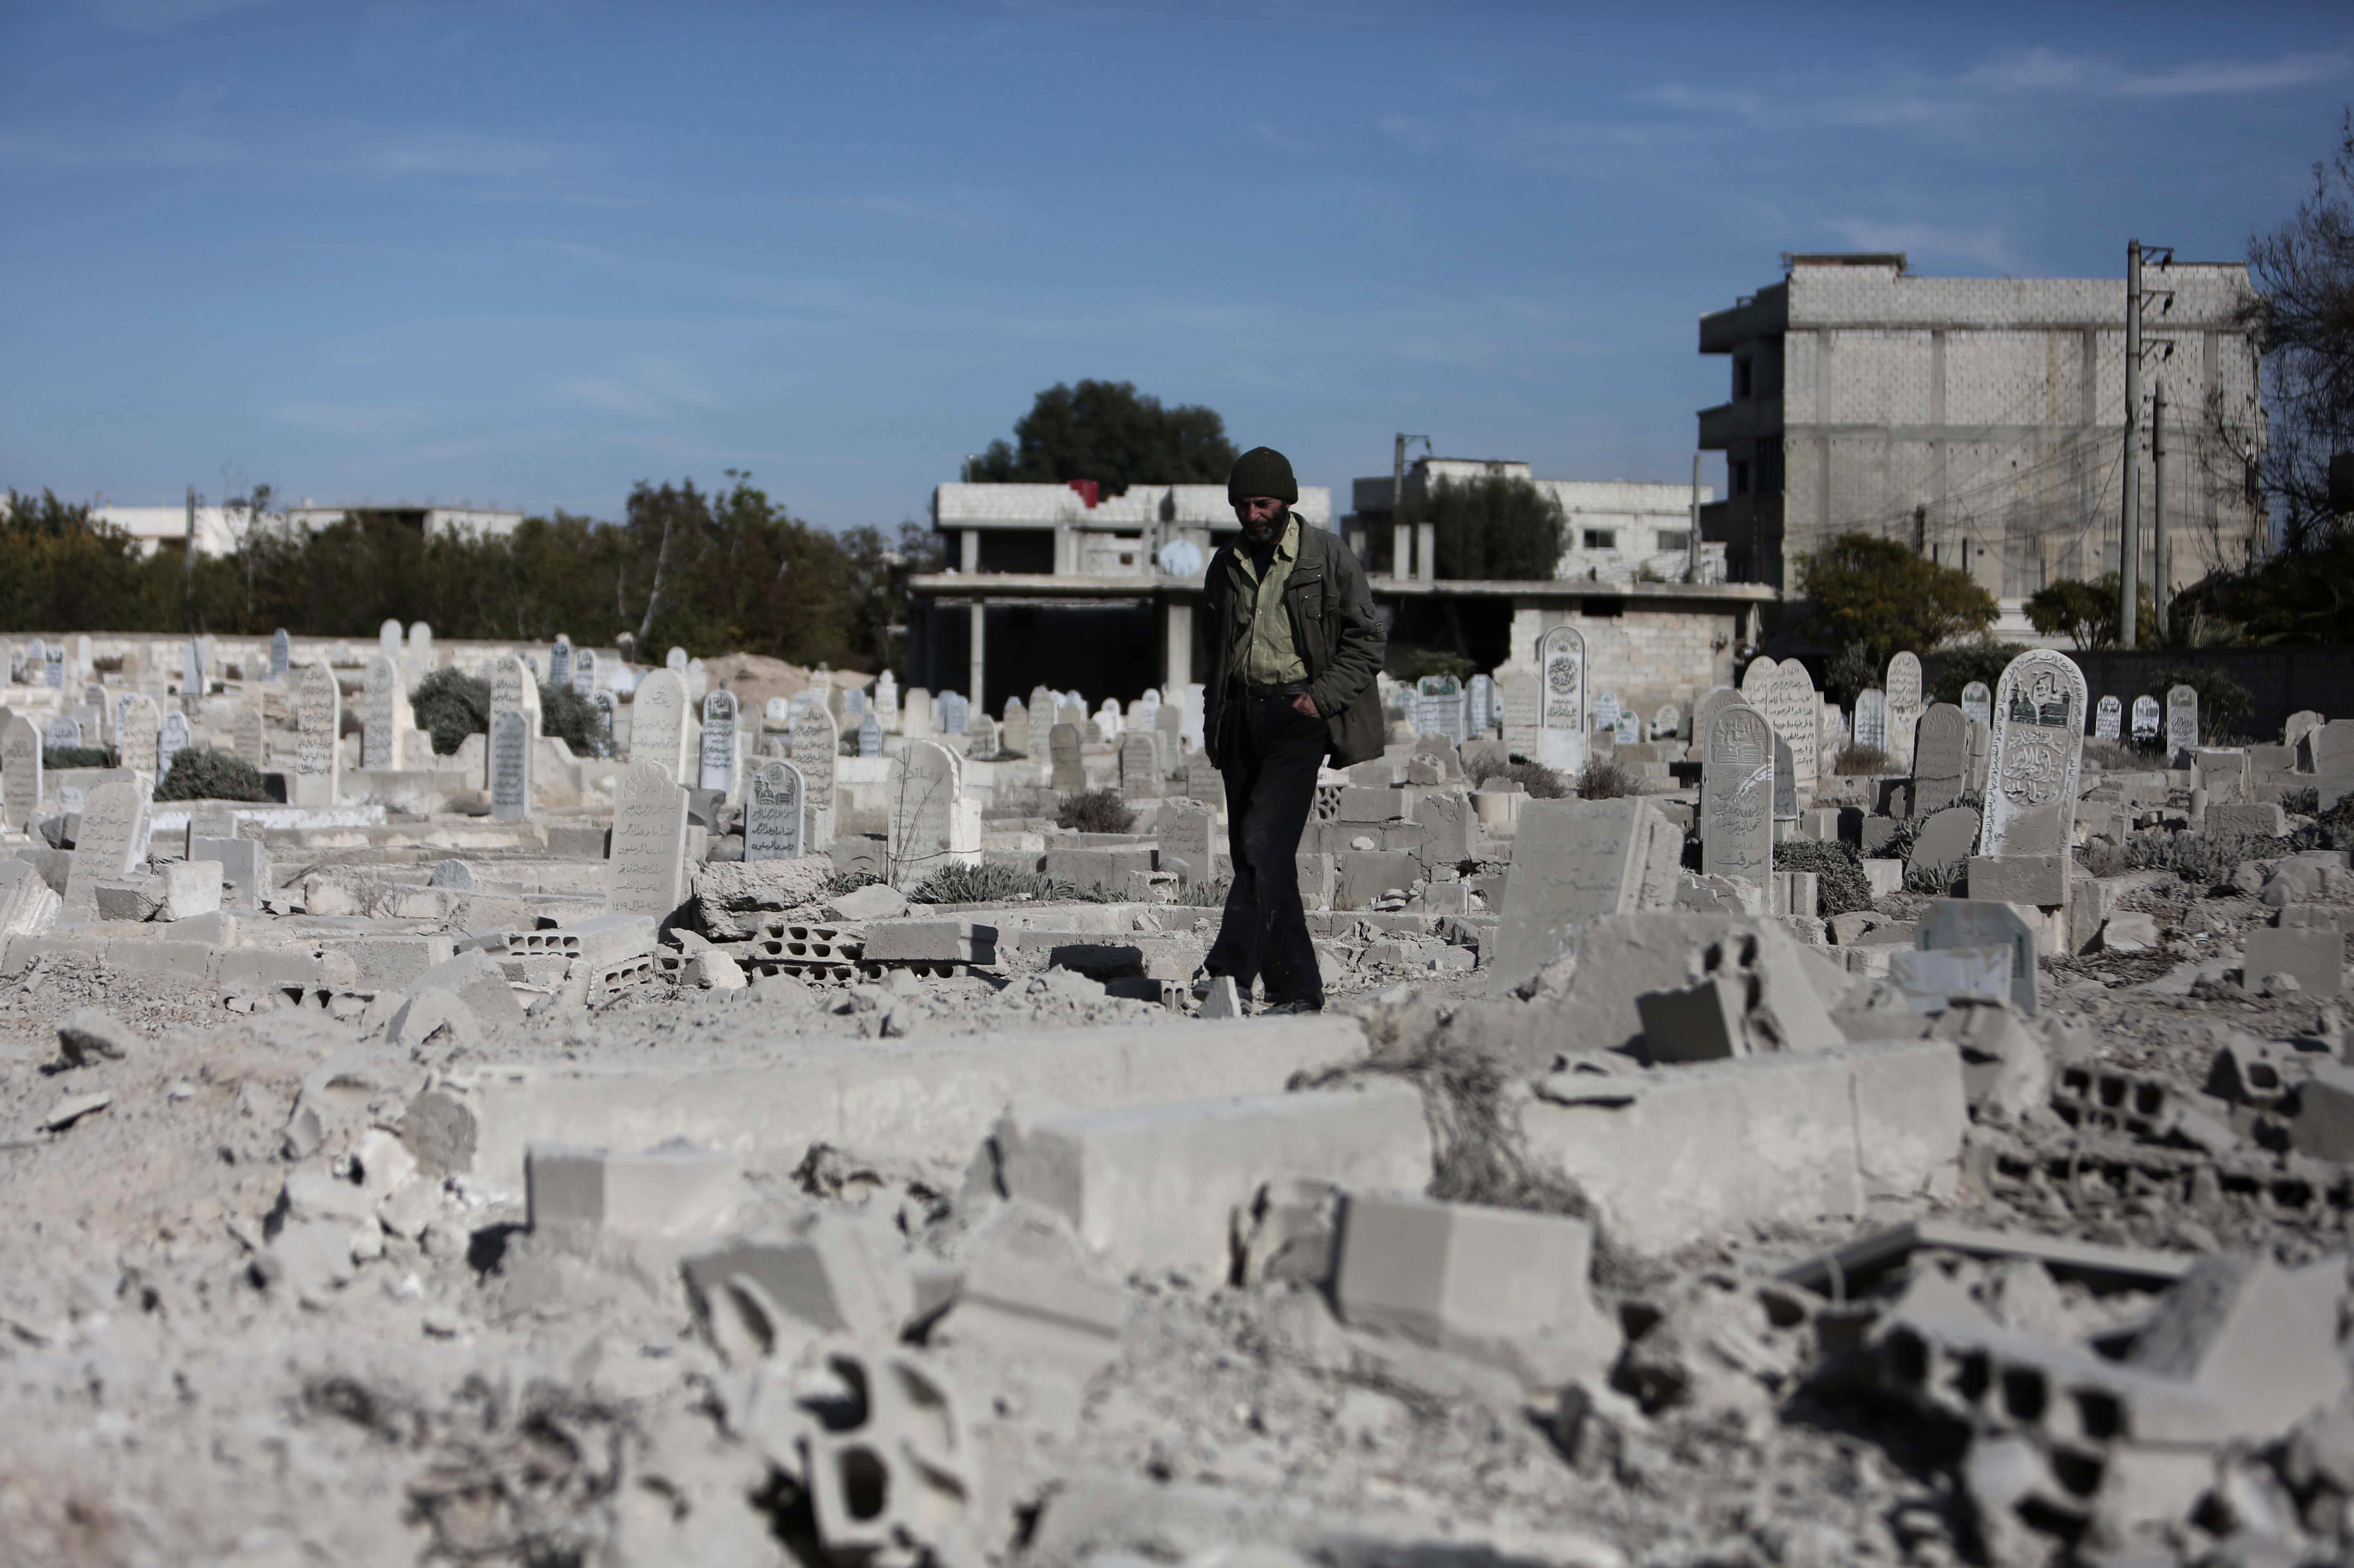 A man walks in a graveyard near destroyed graves in a neighbourhood heavily damaged by air strikes in the village of Deir al-Asafir in the rebel-held region of Eastern Ghouta, on the outskirts of the Syrian capital Damascus (File)